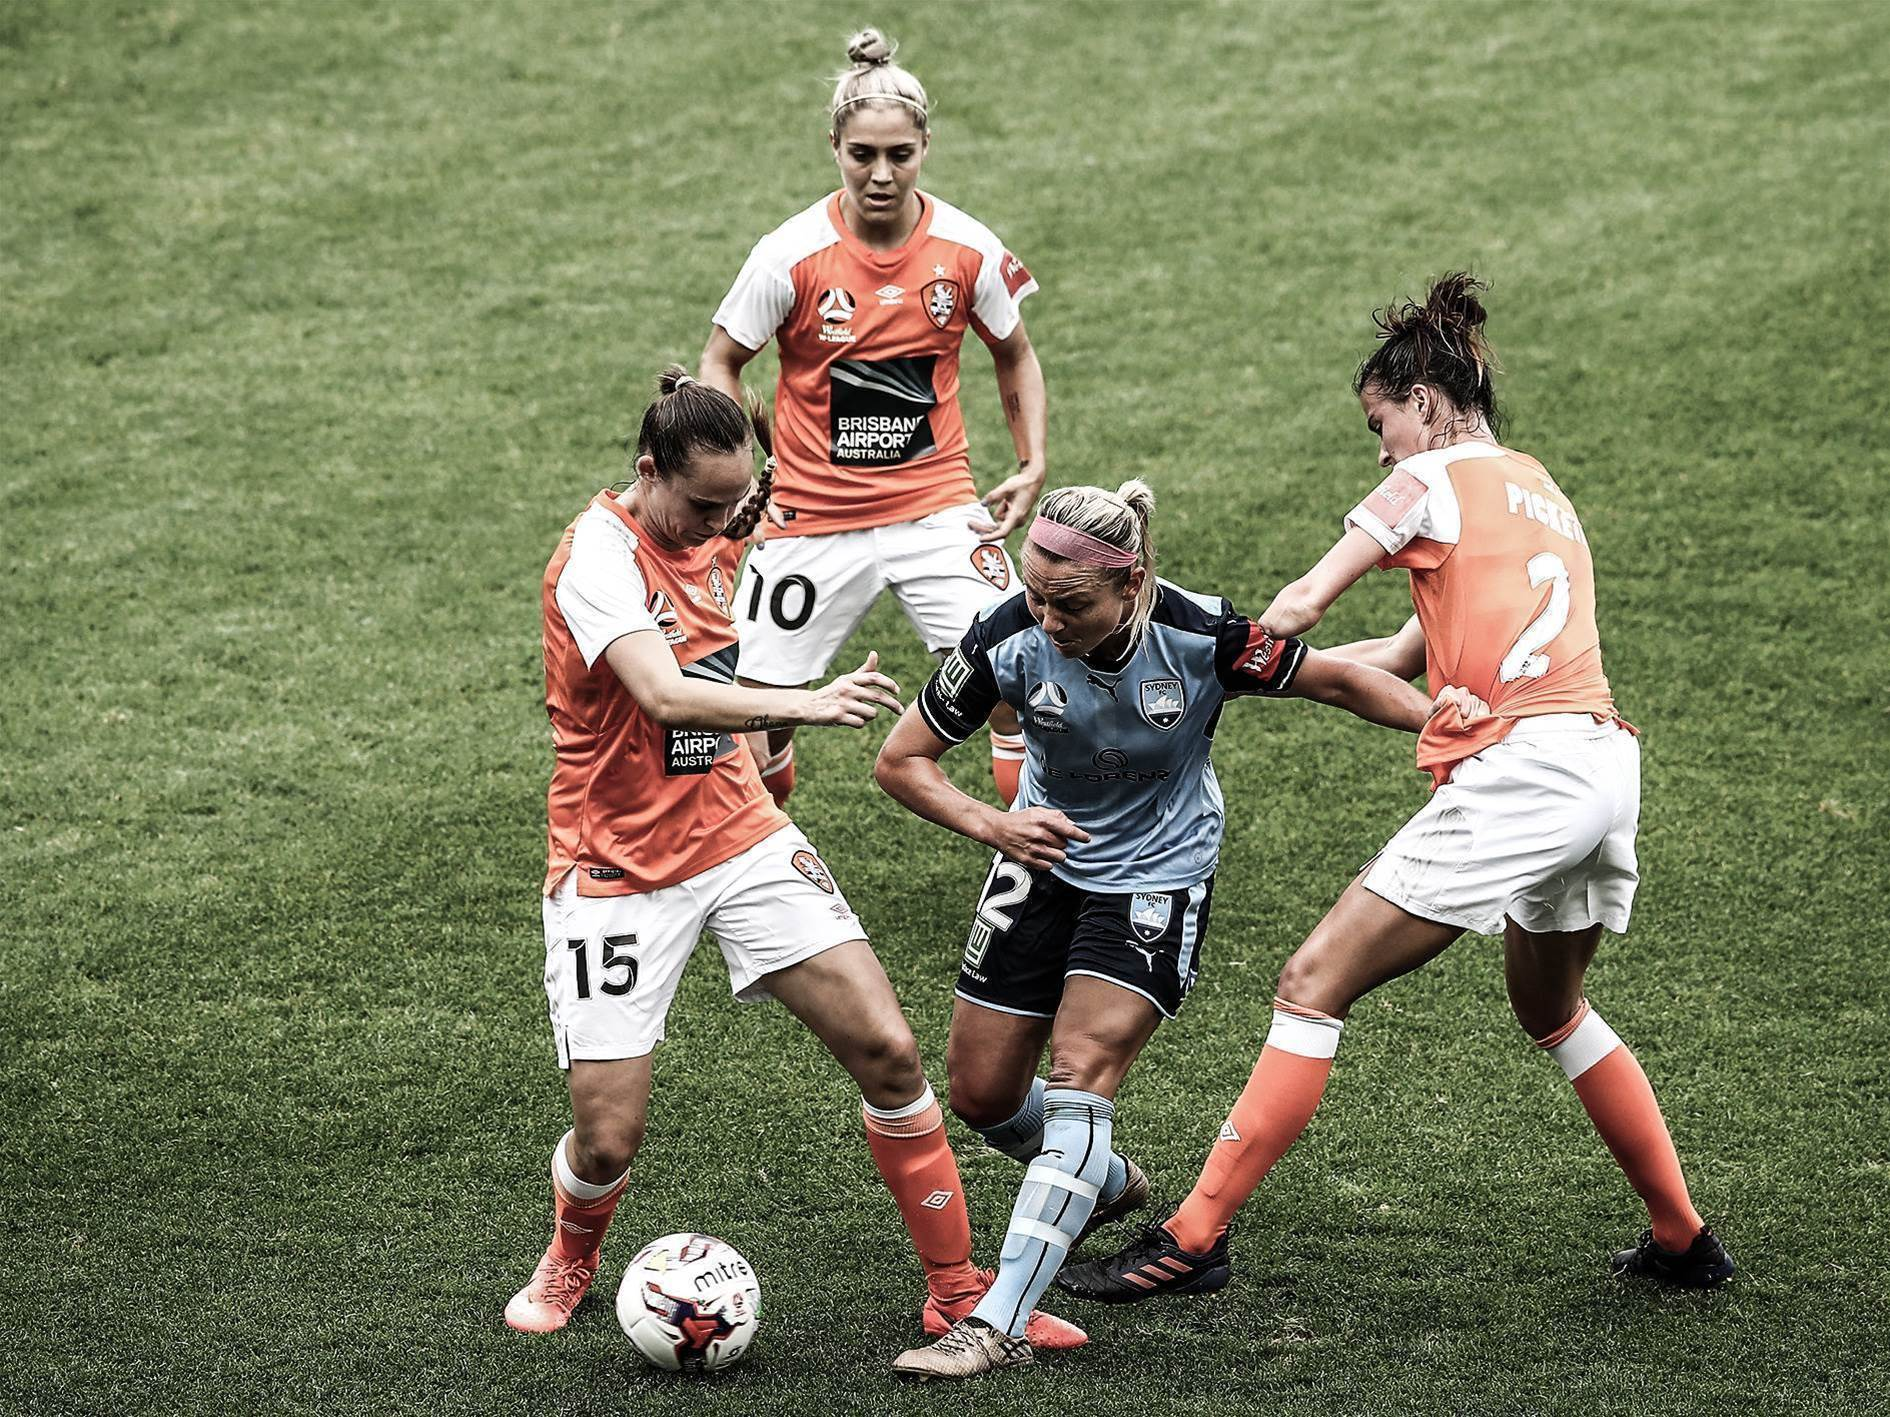 Bootwatch: W-League Season 10 kicks off with a flying start